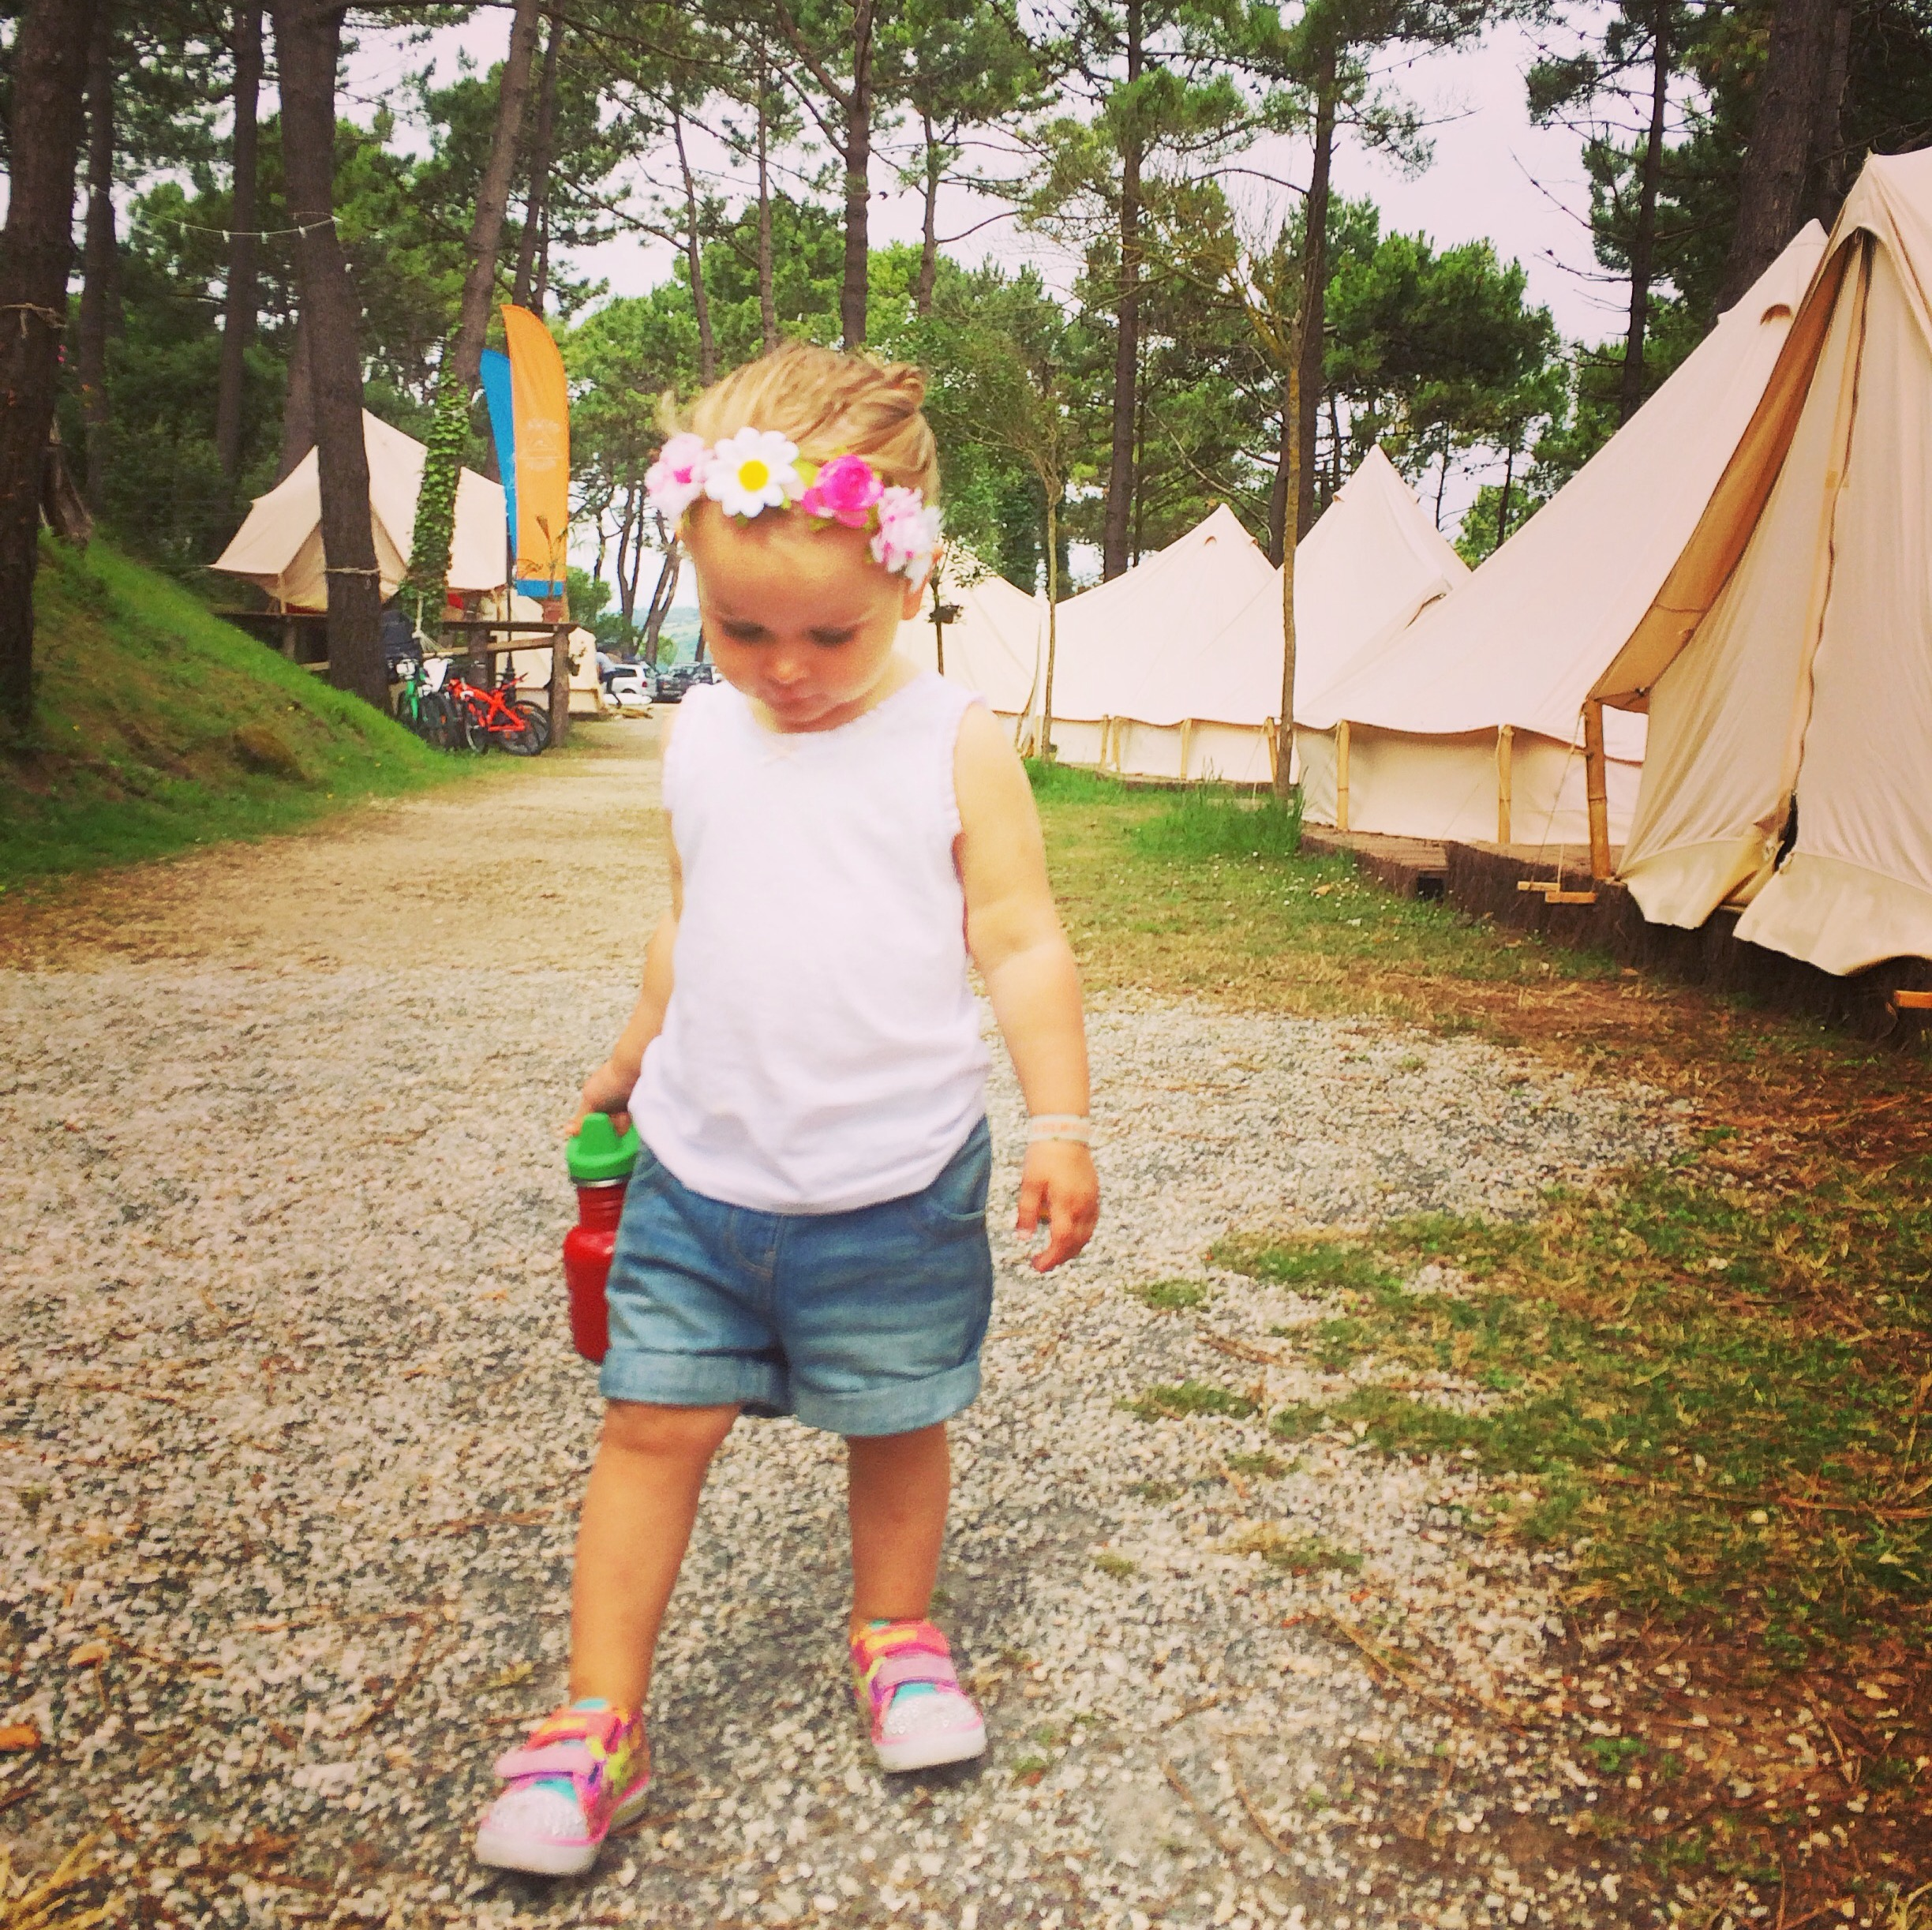 A glamping and surfing holiday in Spain with a toddler